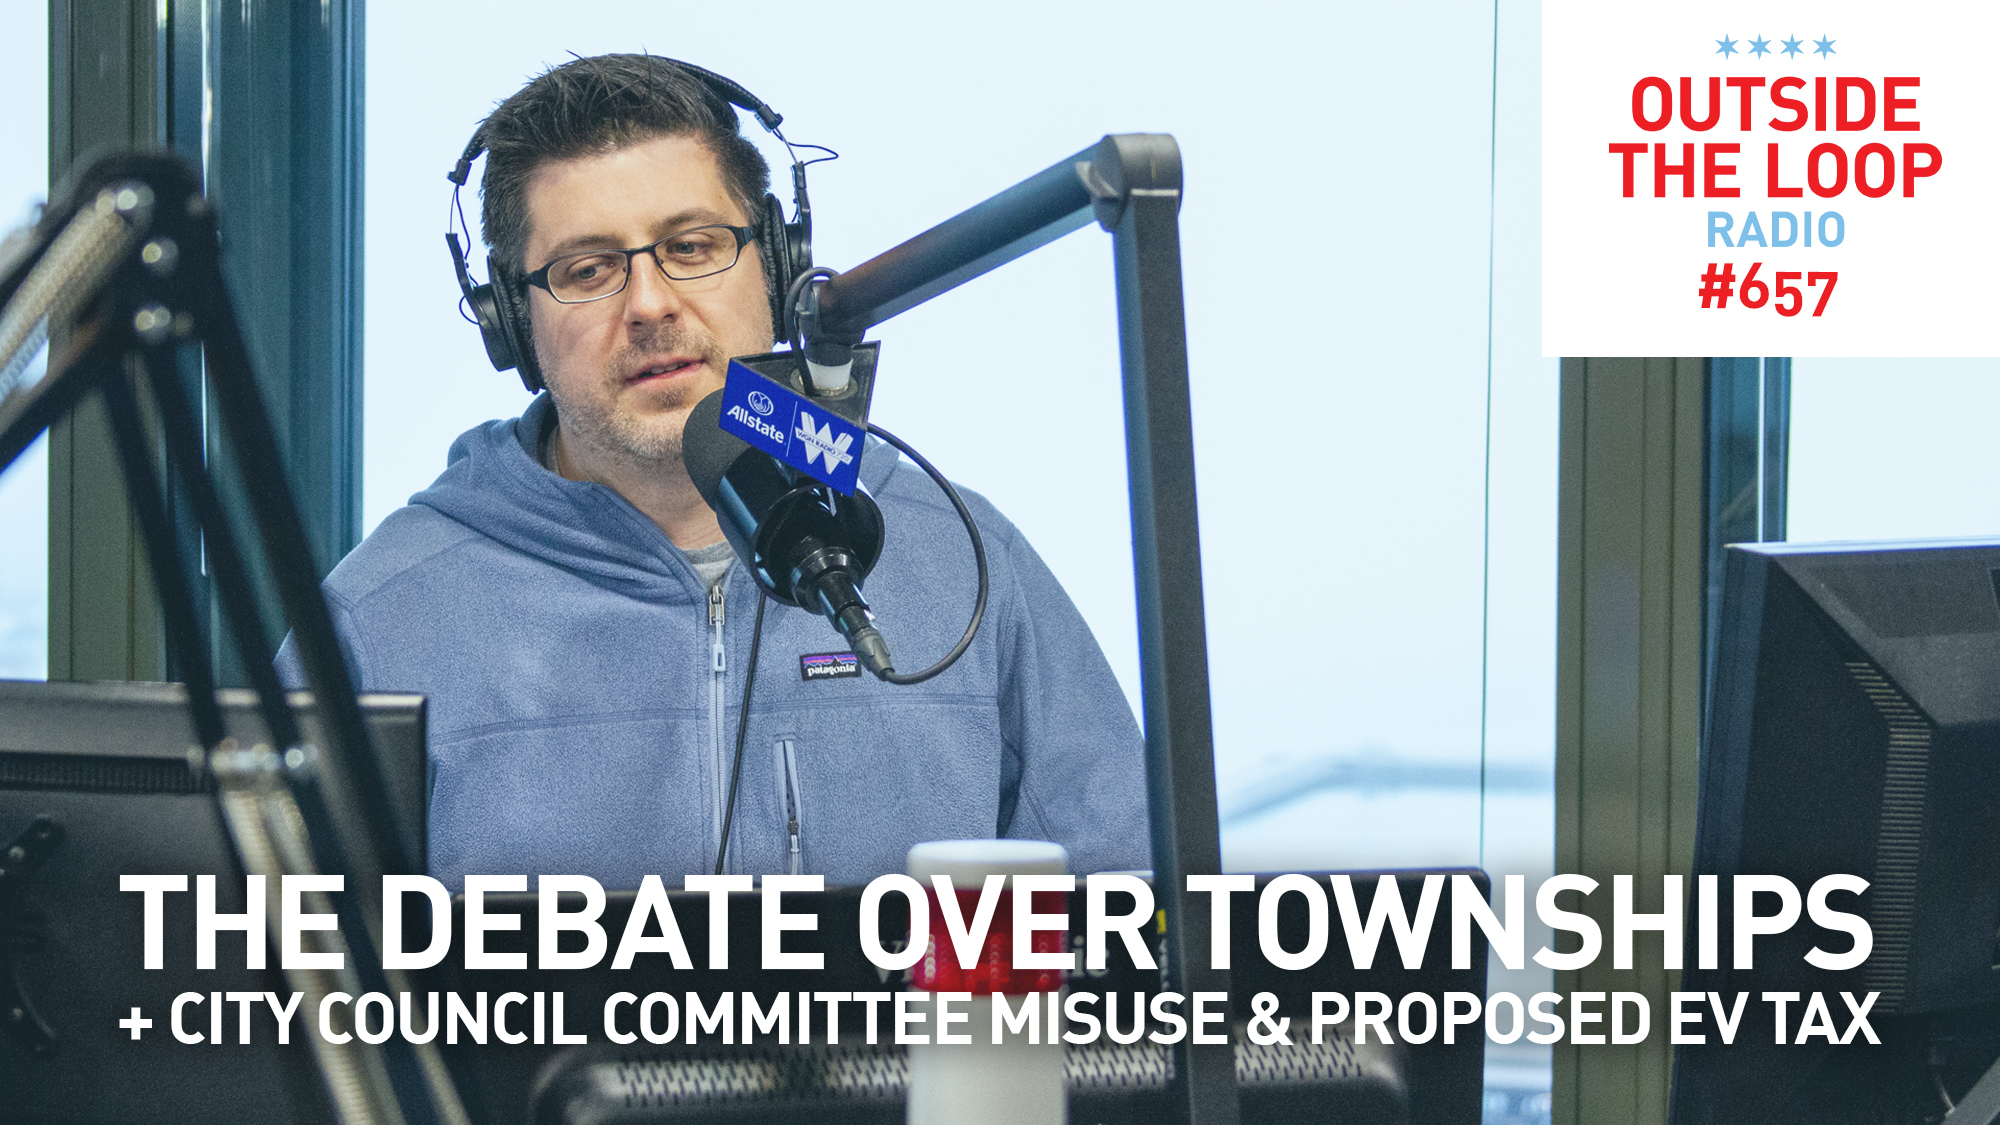 Mike Stephen discusses the possibility of eliminating townships in Illinois.